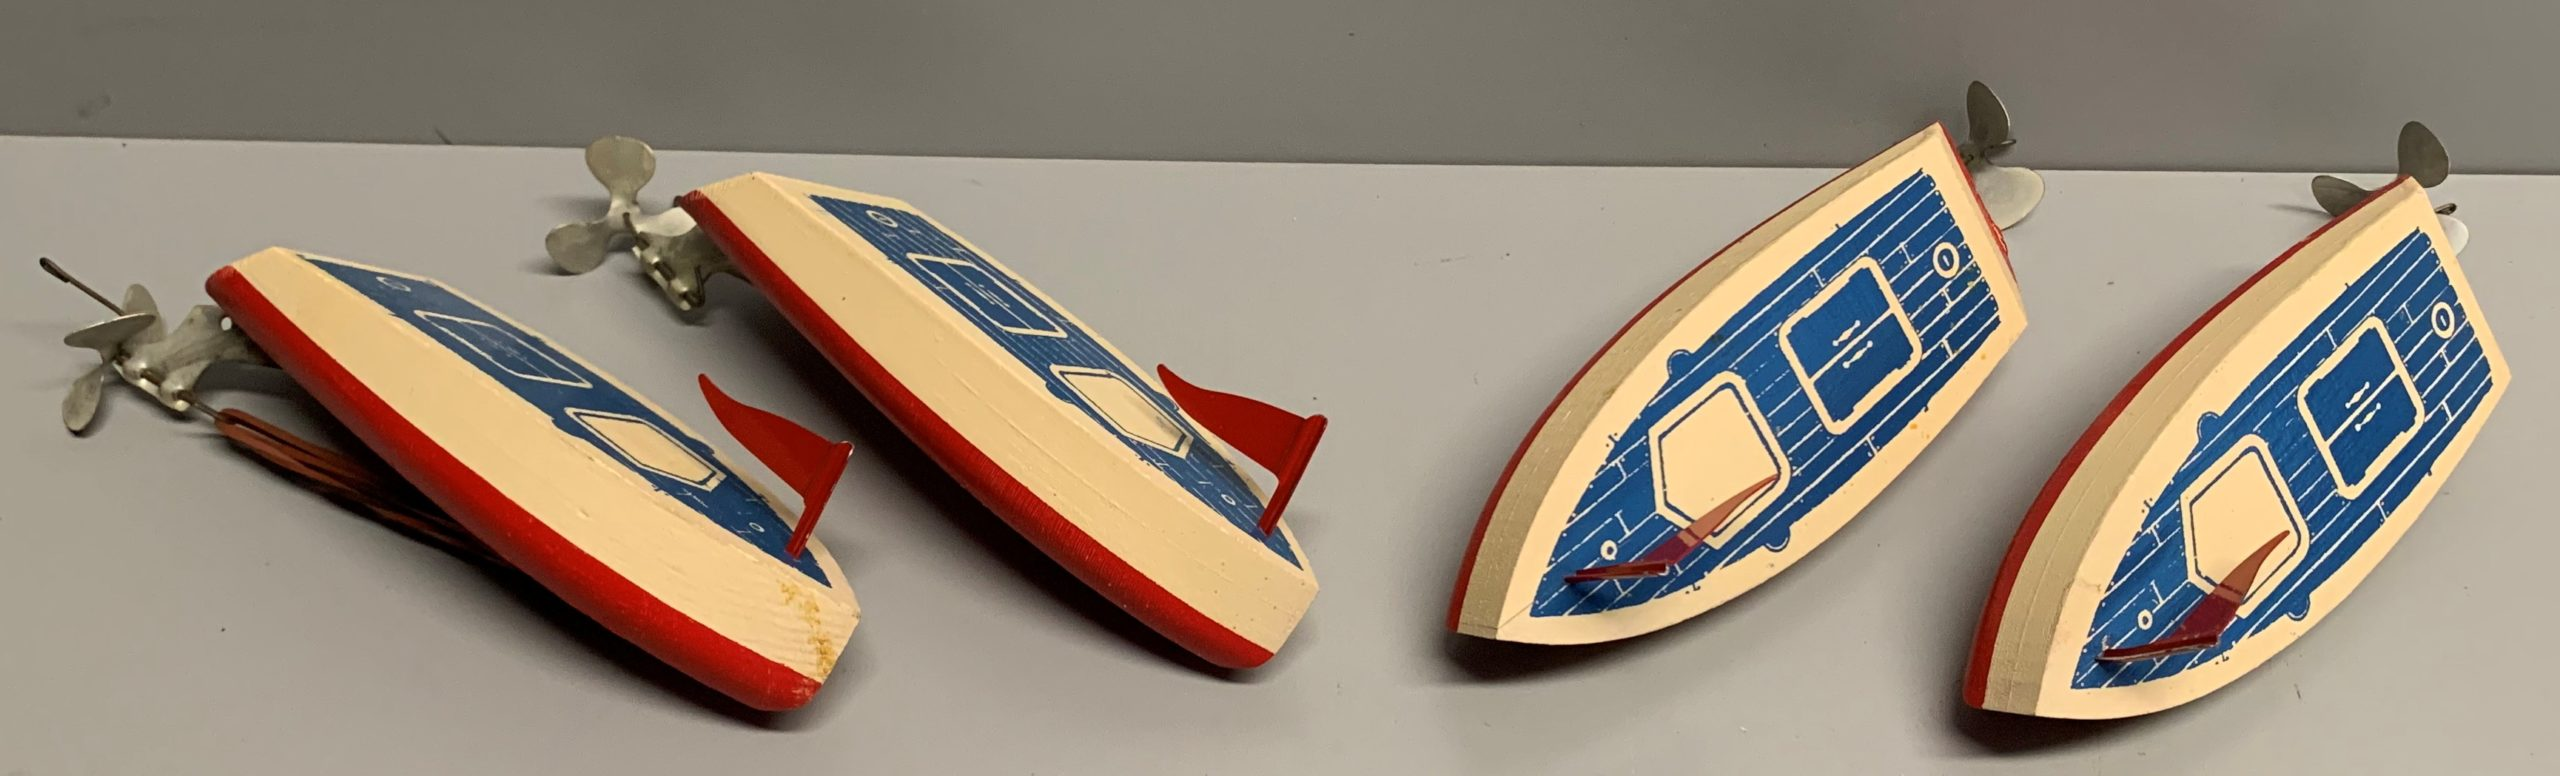 Rubber Band Powered Speedboats